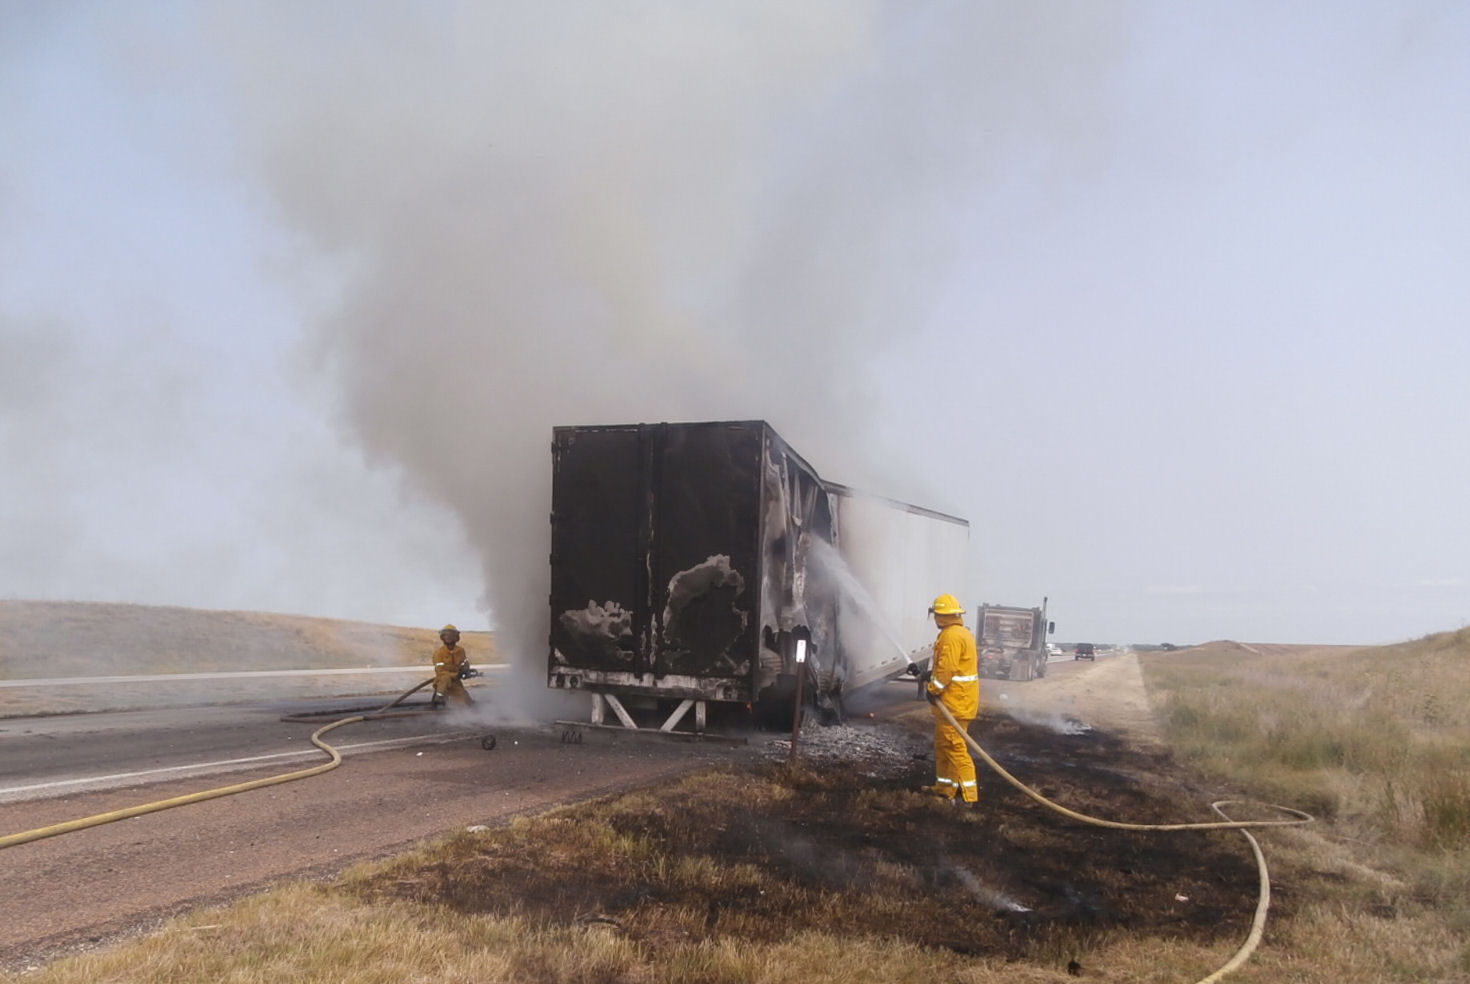 Semi Catches Fire